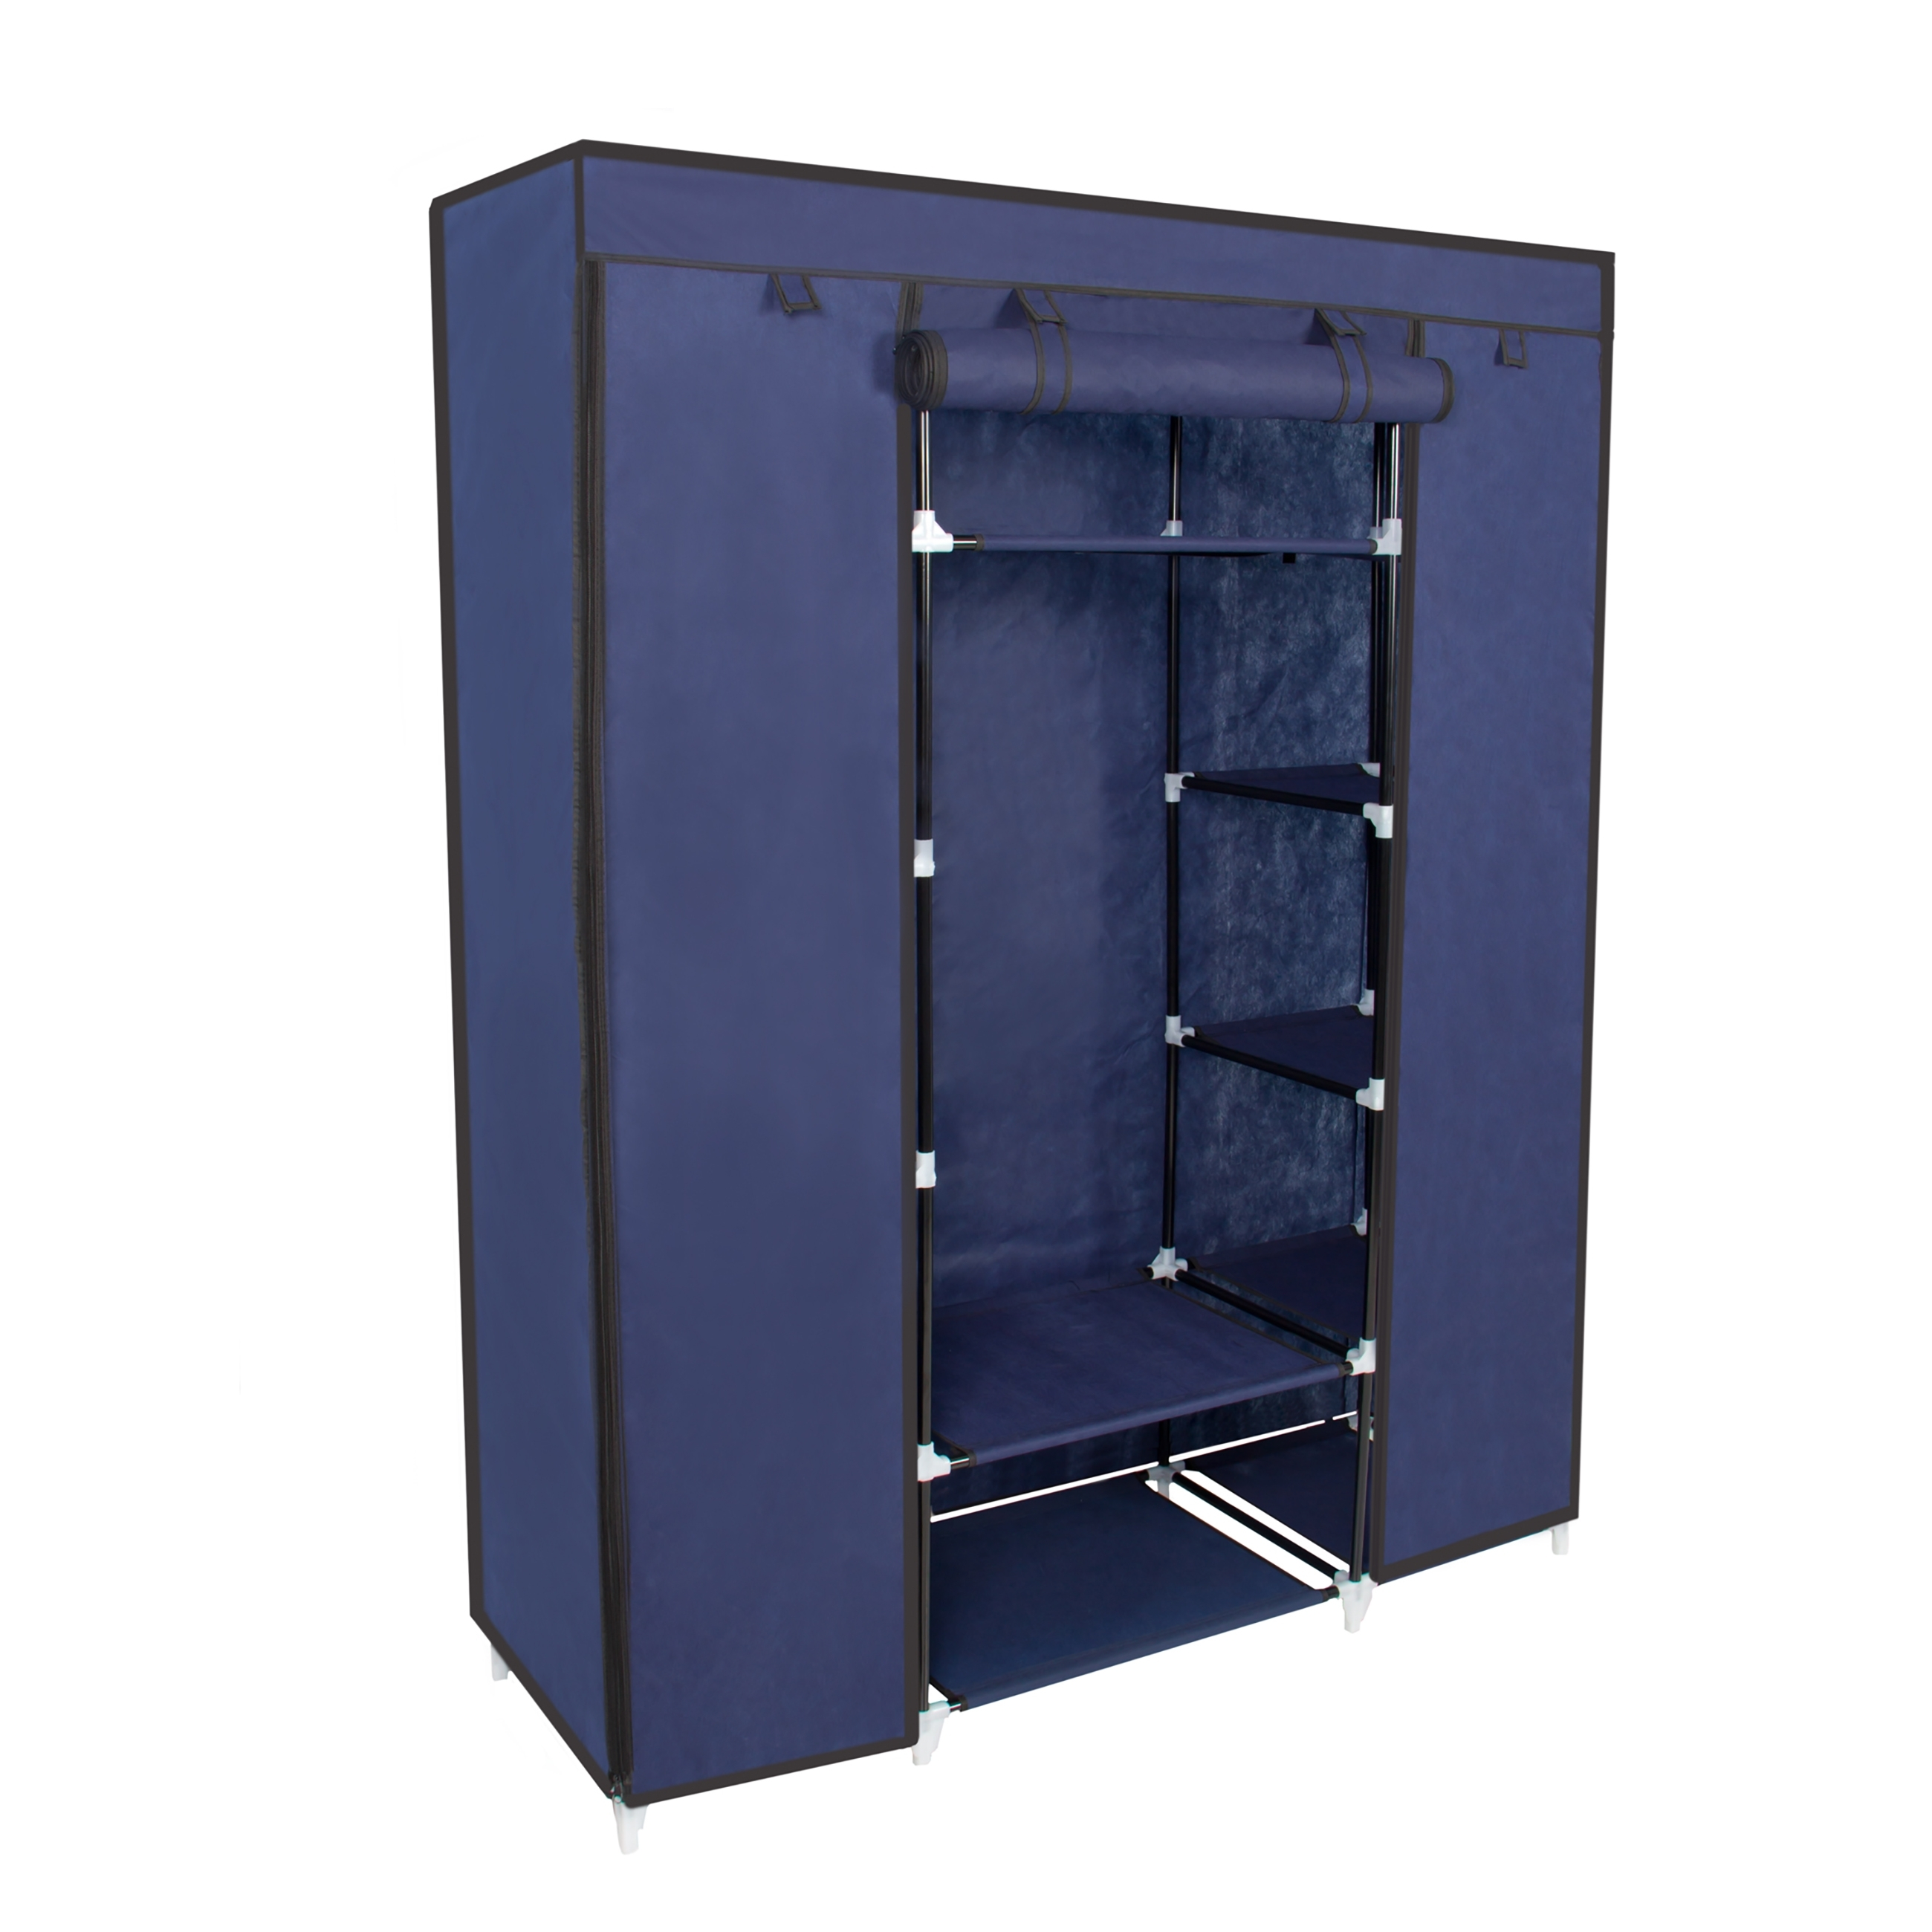 53    Portable Closet Storage Organizer Wardrobe Clothes Rack inside On the Go With a Portable Wardrobe Closet